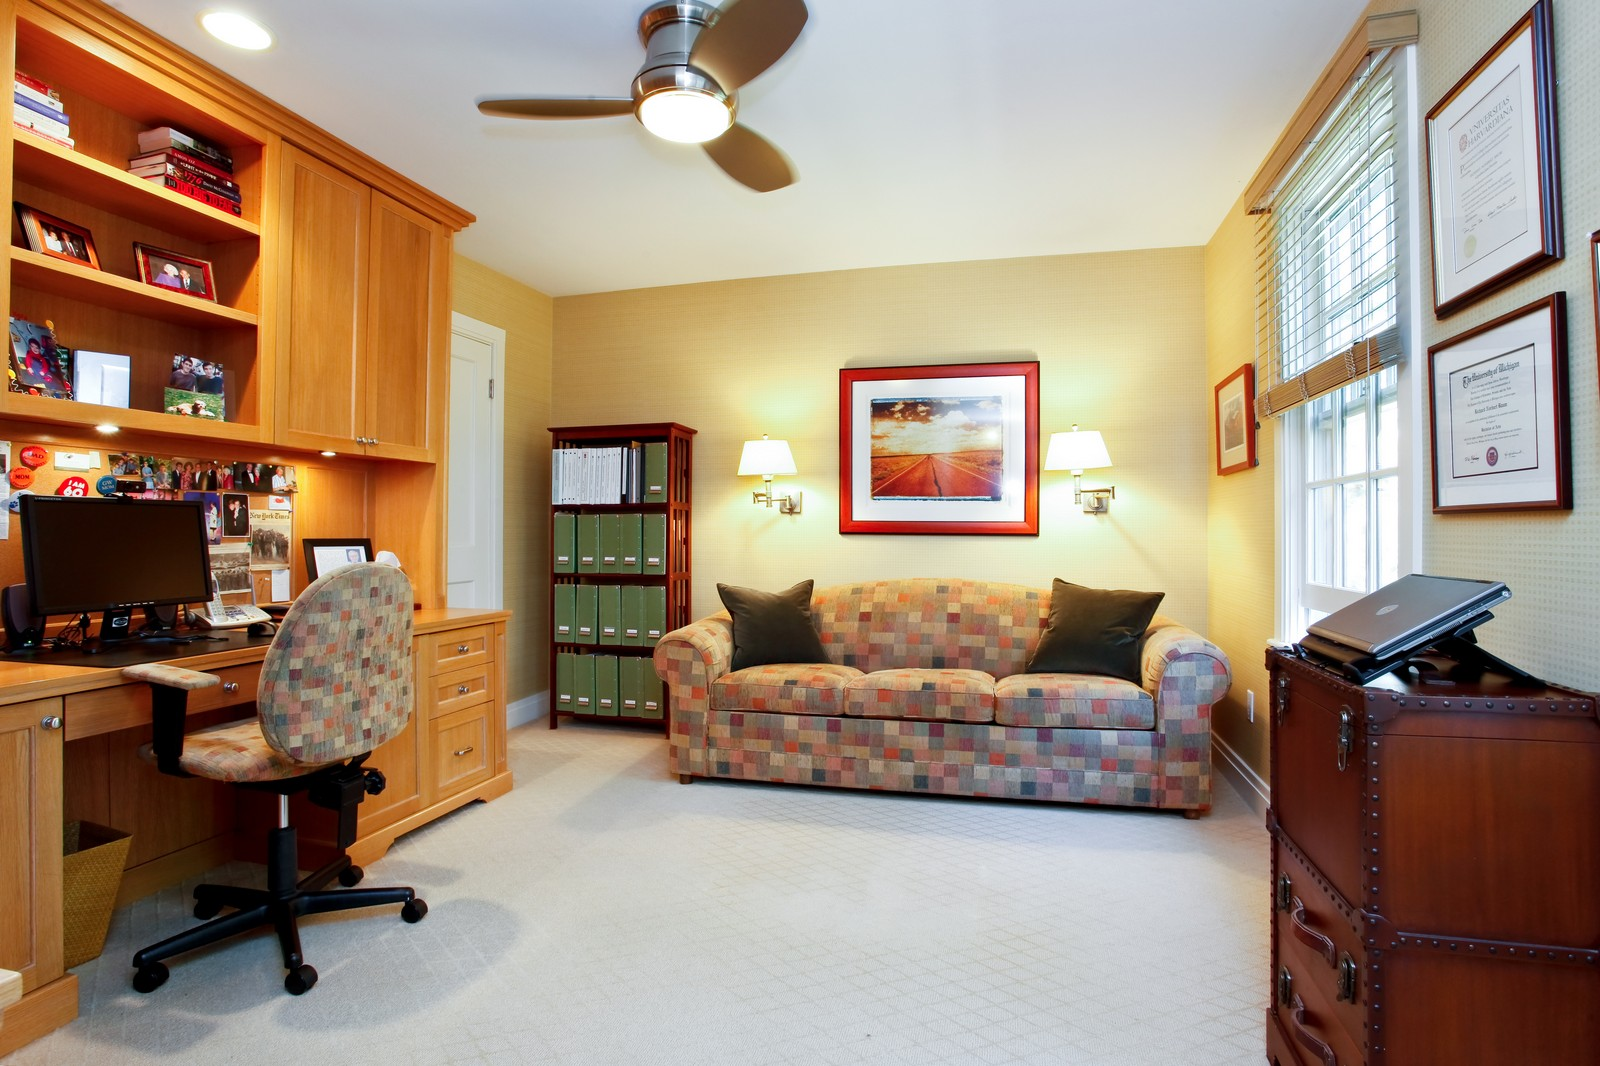 Real Estate Photography - 30 Hadden Rd, Scarsdale, NY, 10583 - Bedroom/Study